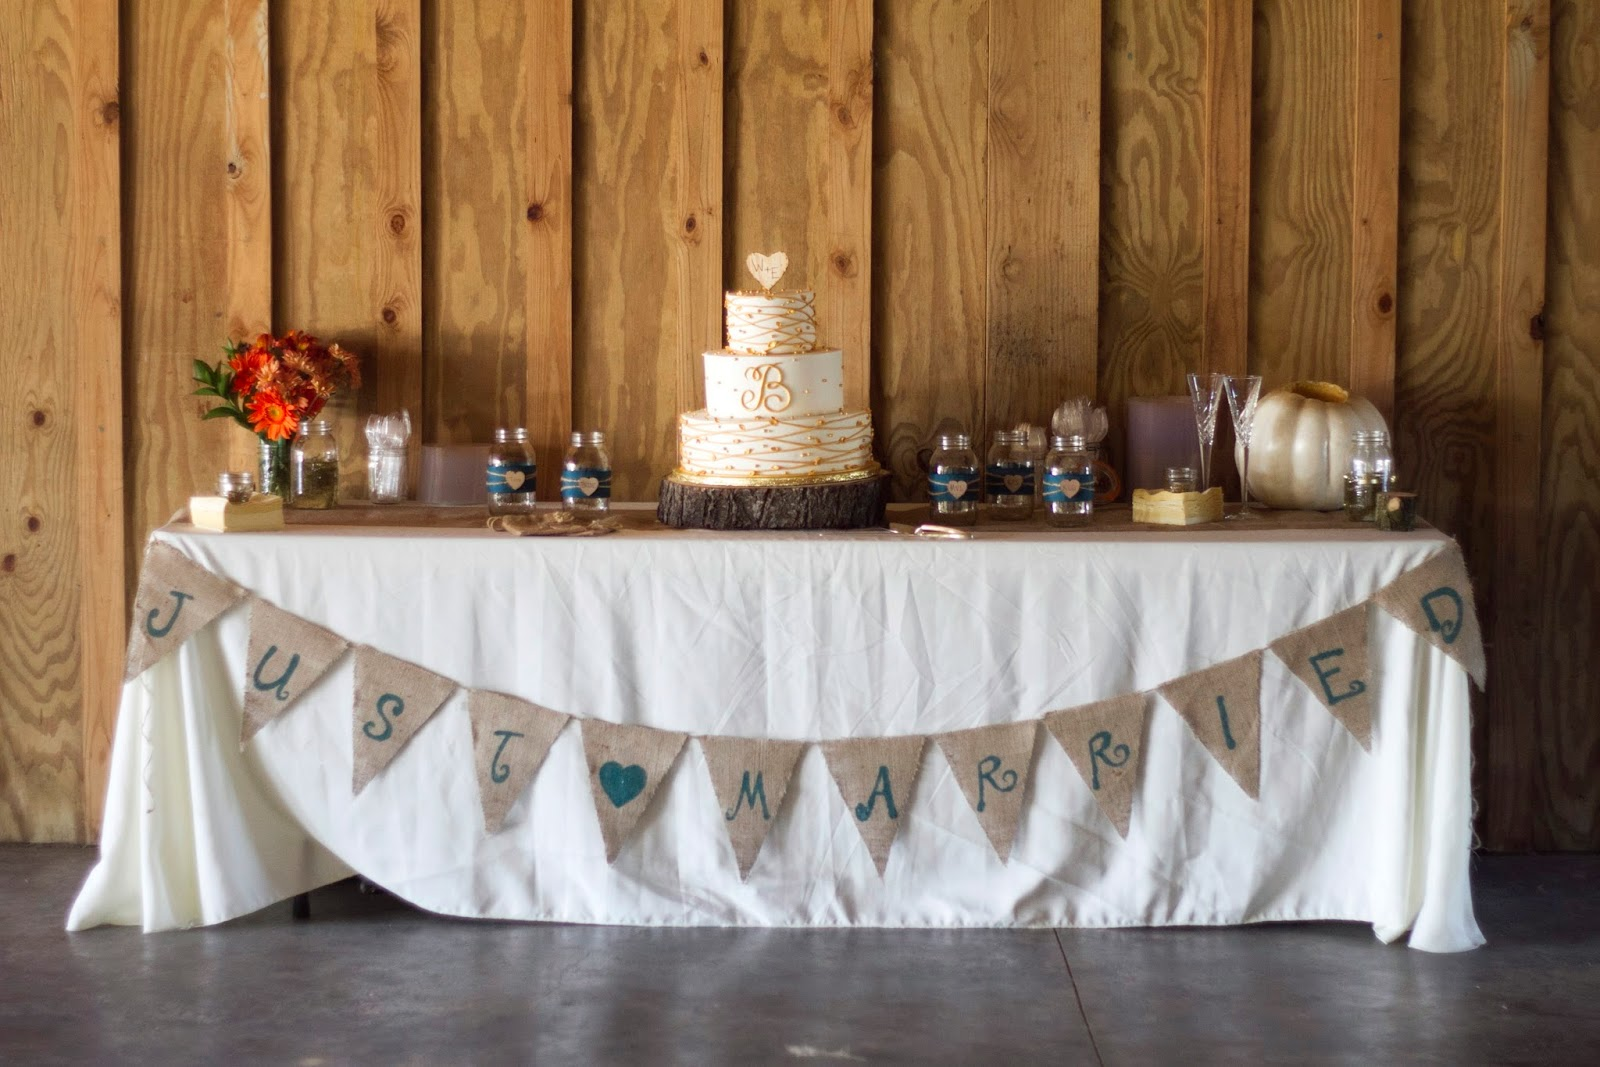 fall wedding series 4 the cake and present tables create share repeat. Black Bedroom Furniture Sets. Home Design Ideas